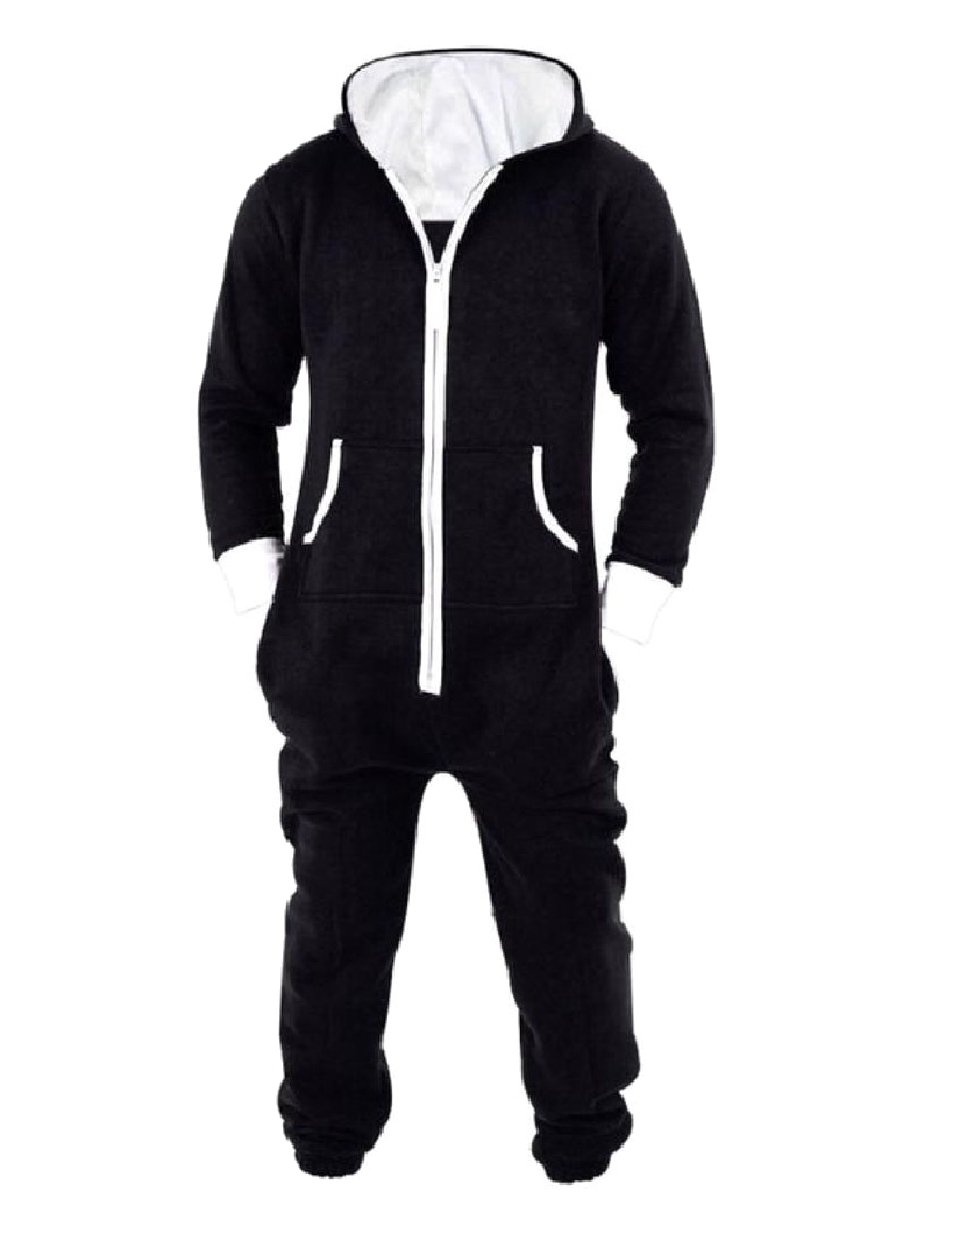 Tootless-Men Cosplay Hoode Fine Cotton Lounger Pocket Jumpsuit Pajamas Black S